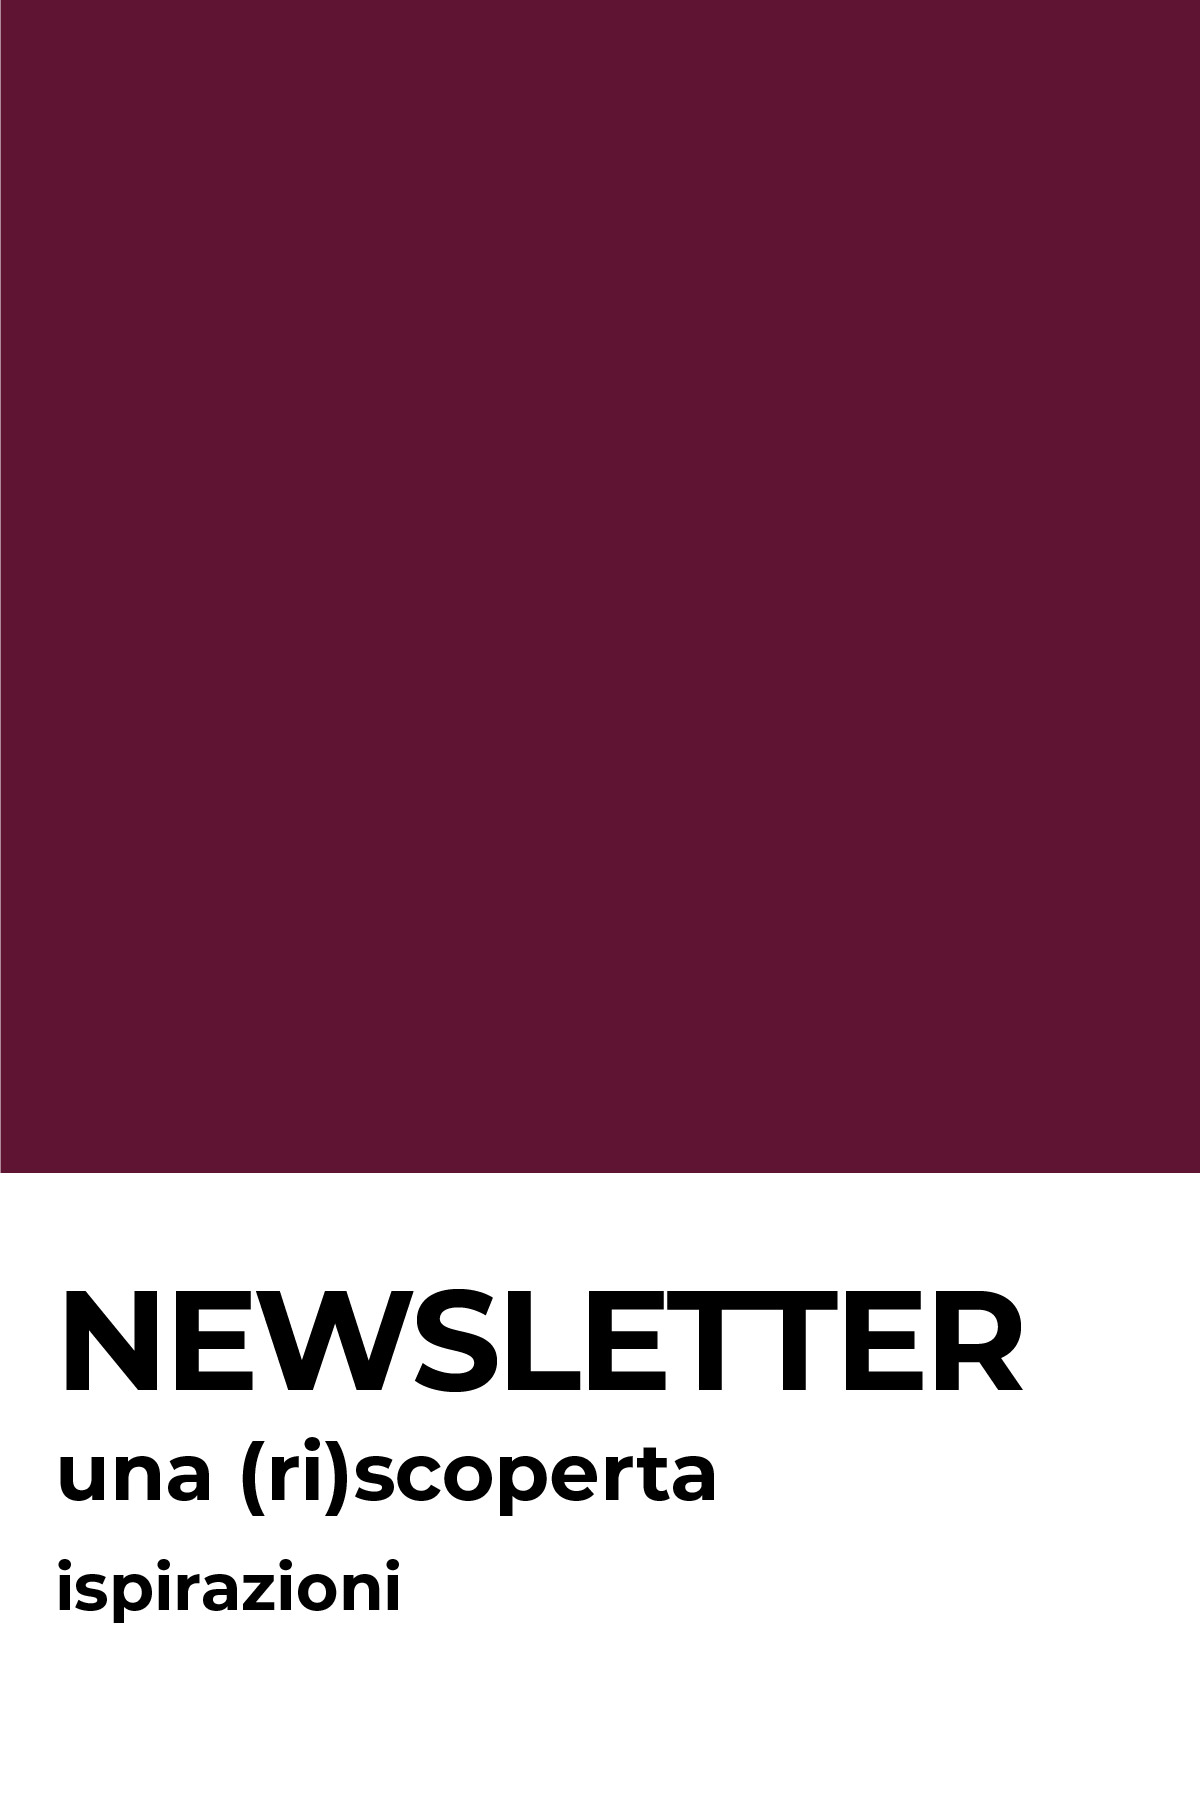 riscoprire le newsletter